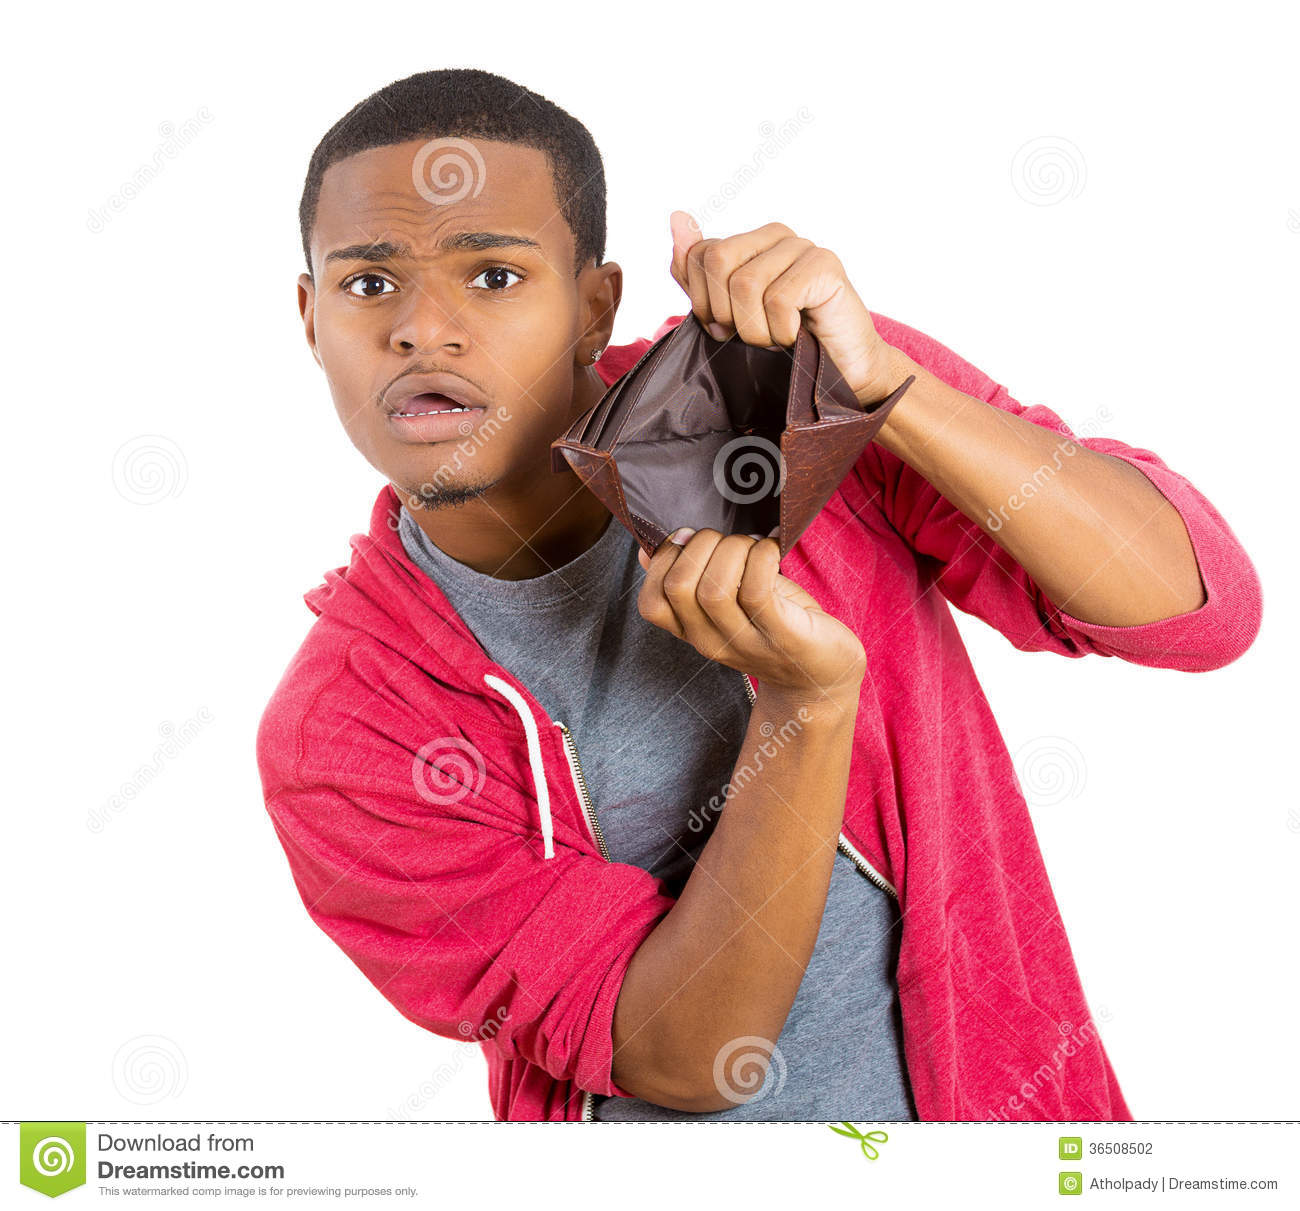 Download Broke Guy With Empty Wallet Stock Photo - Image of cash, irresponsible: 36508502